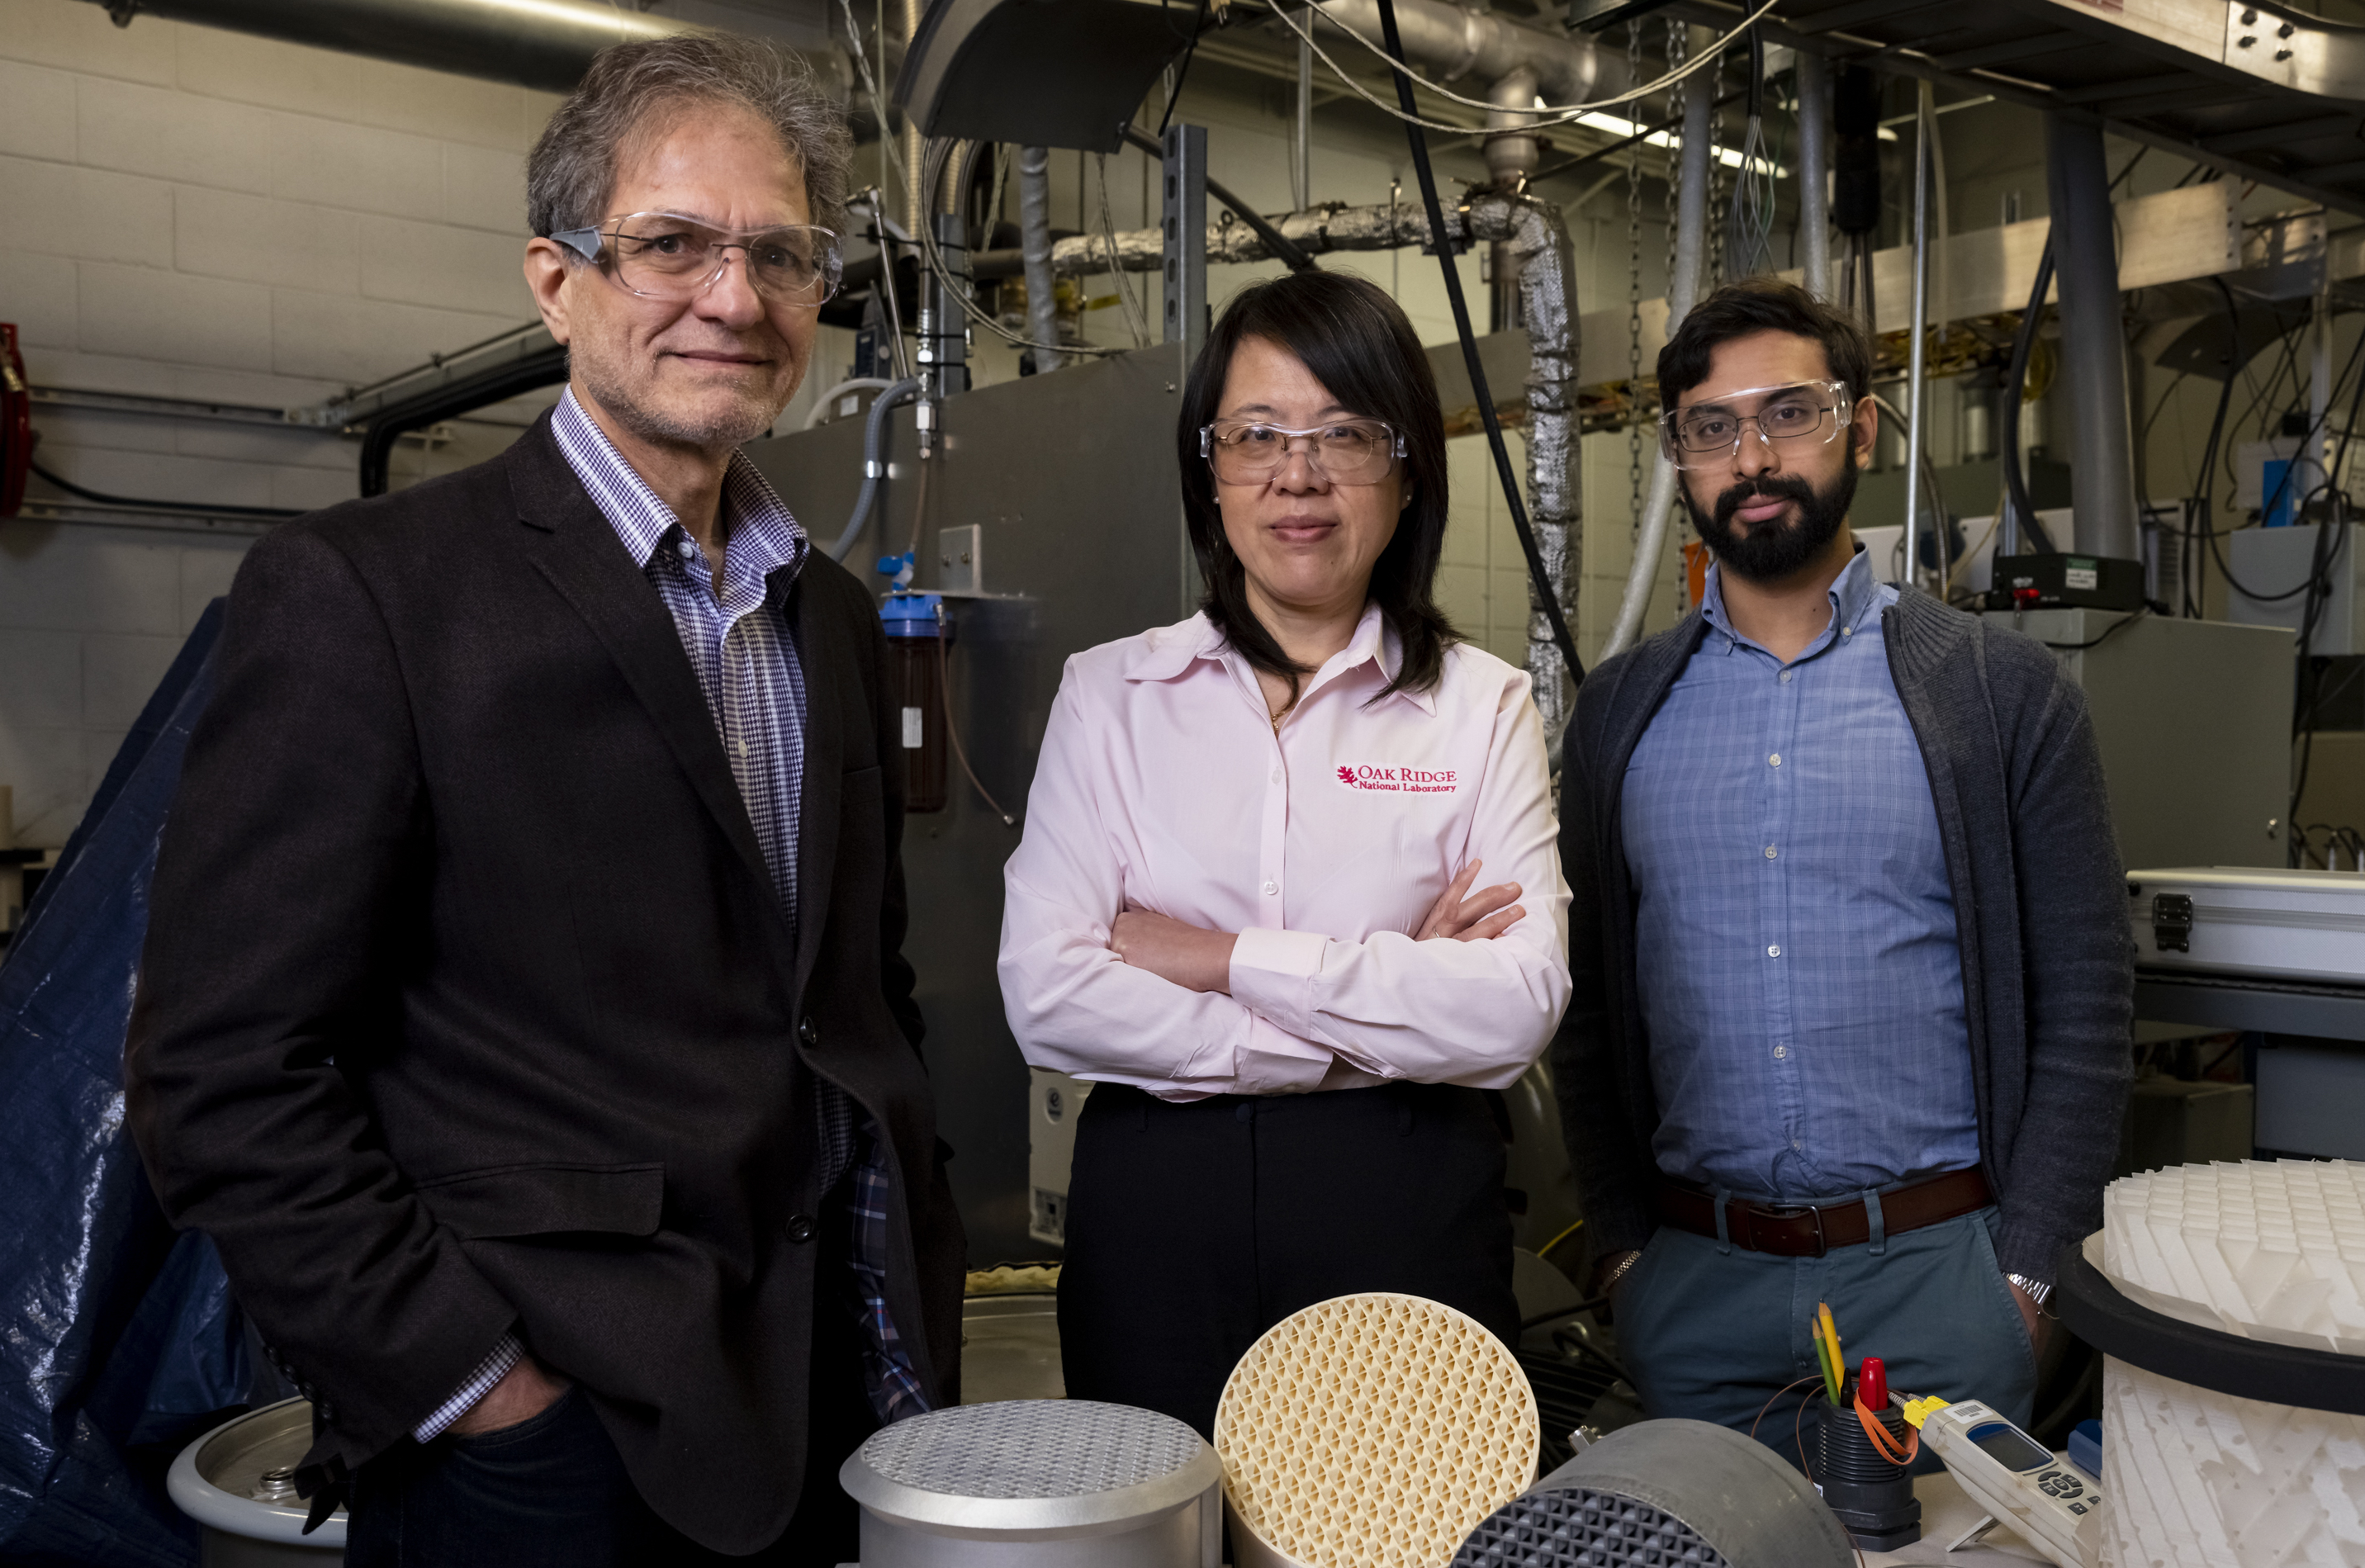 The ORNL researchers (pictured) used 3D printing to optimize their device for carbon dioxide absorbency. Photo via Carlos Jones, ORNL.